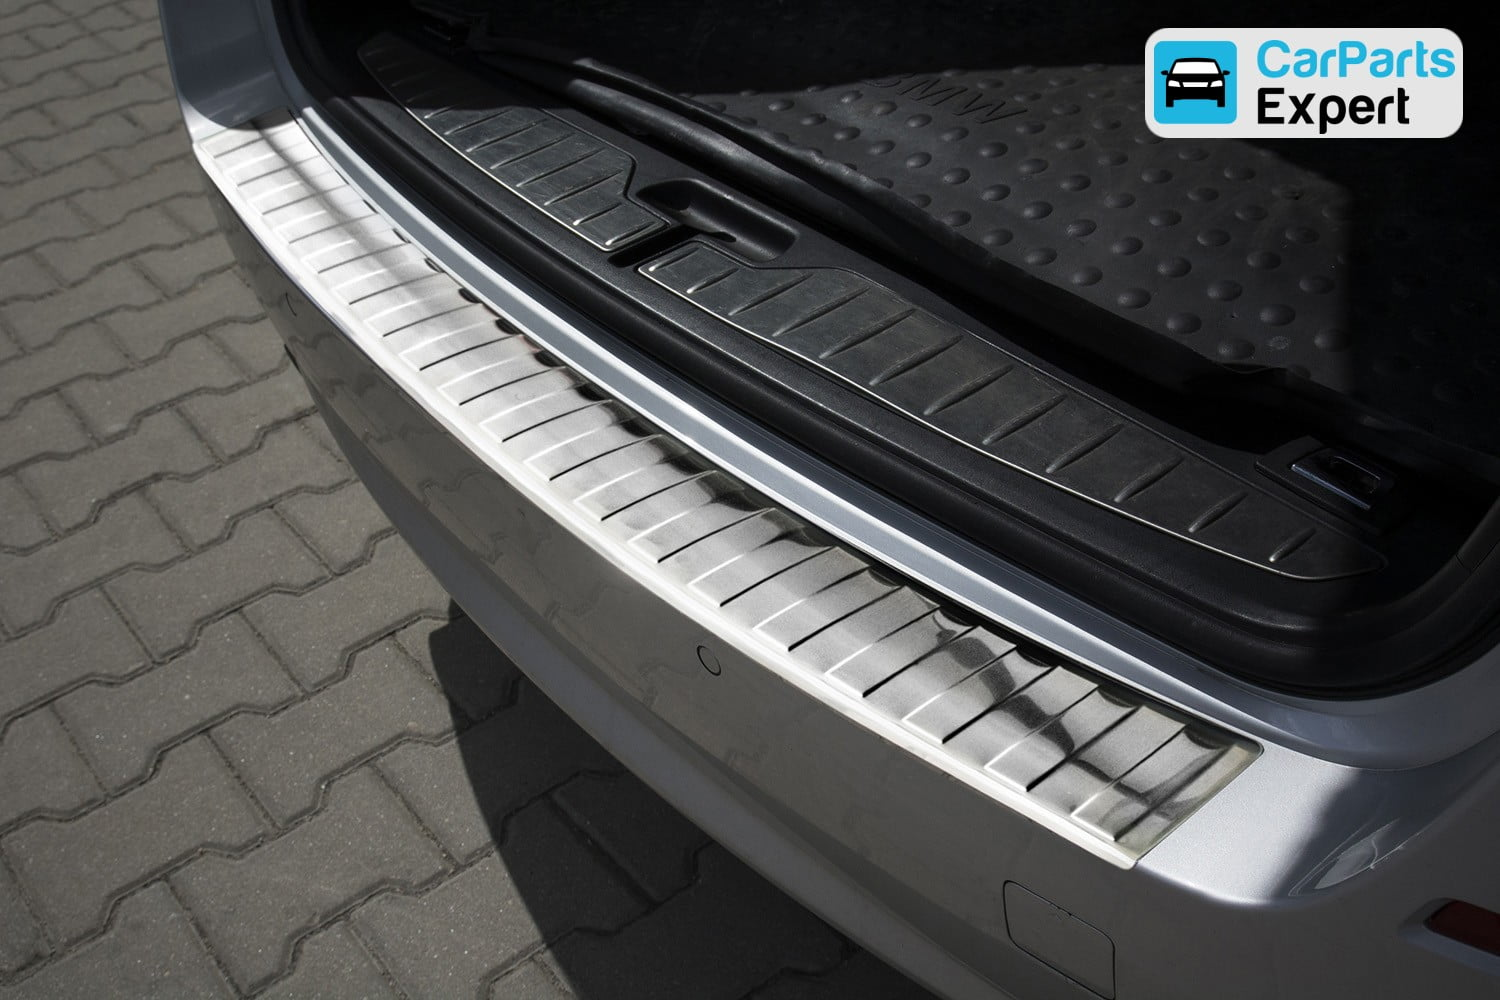 BMW 5 Series Touring (F11) 2010- rear bumper protector stainless steel (BMW45SBP)